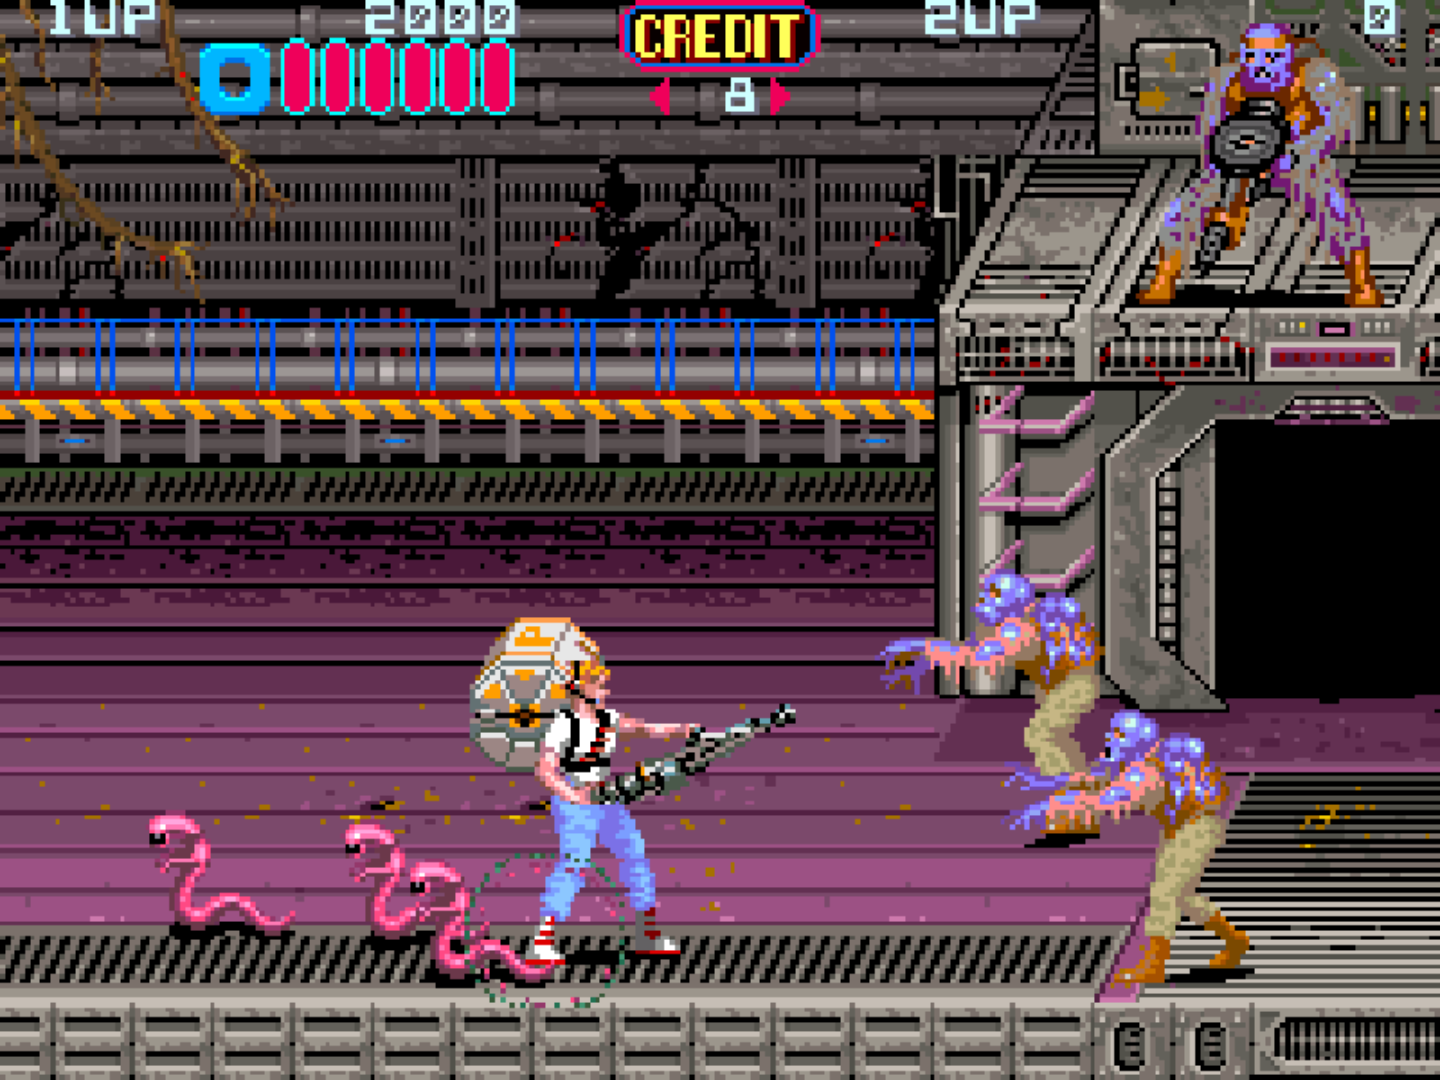 File:Arcade 0172 038.png